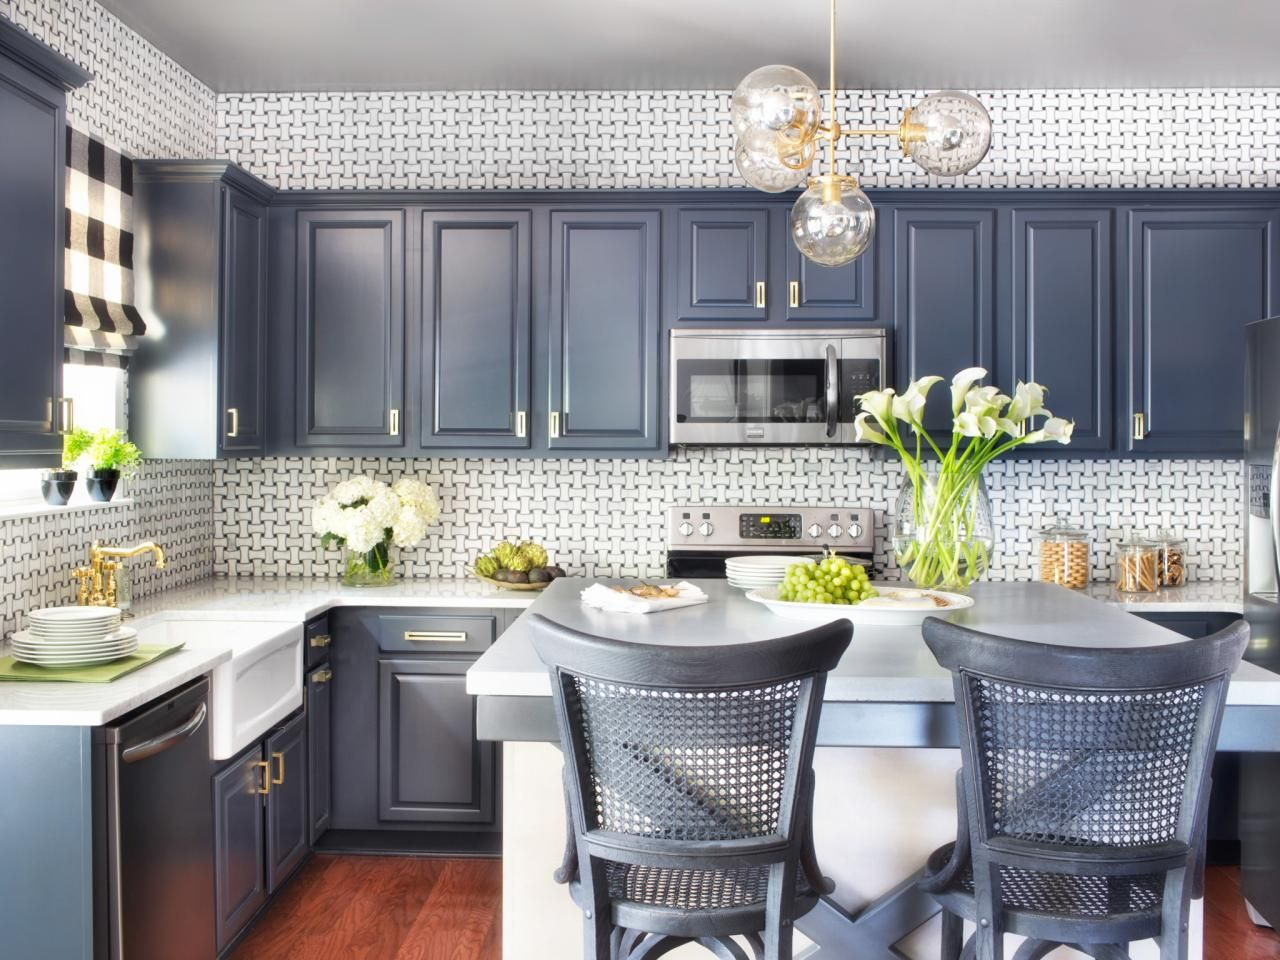 Spray Painting Kitchen Cabinets Pictures Ideas From Hgtv Design With Islands Backsplashes